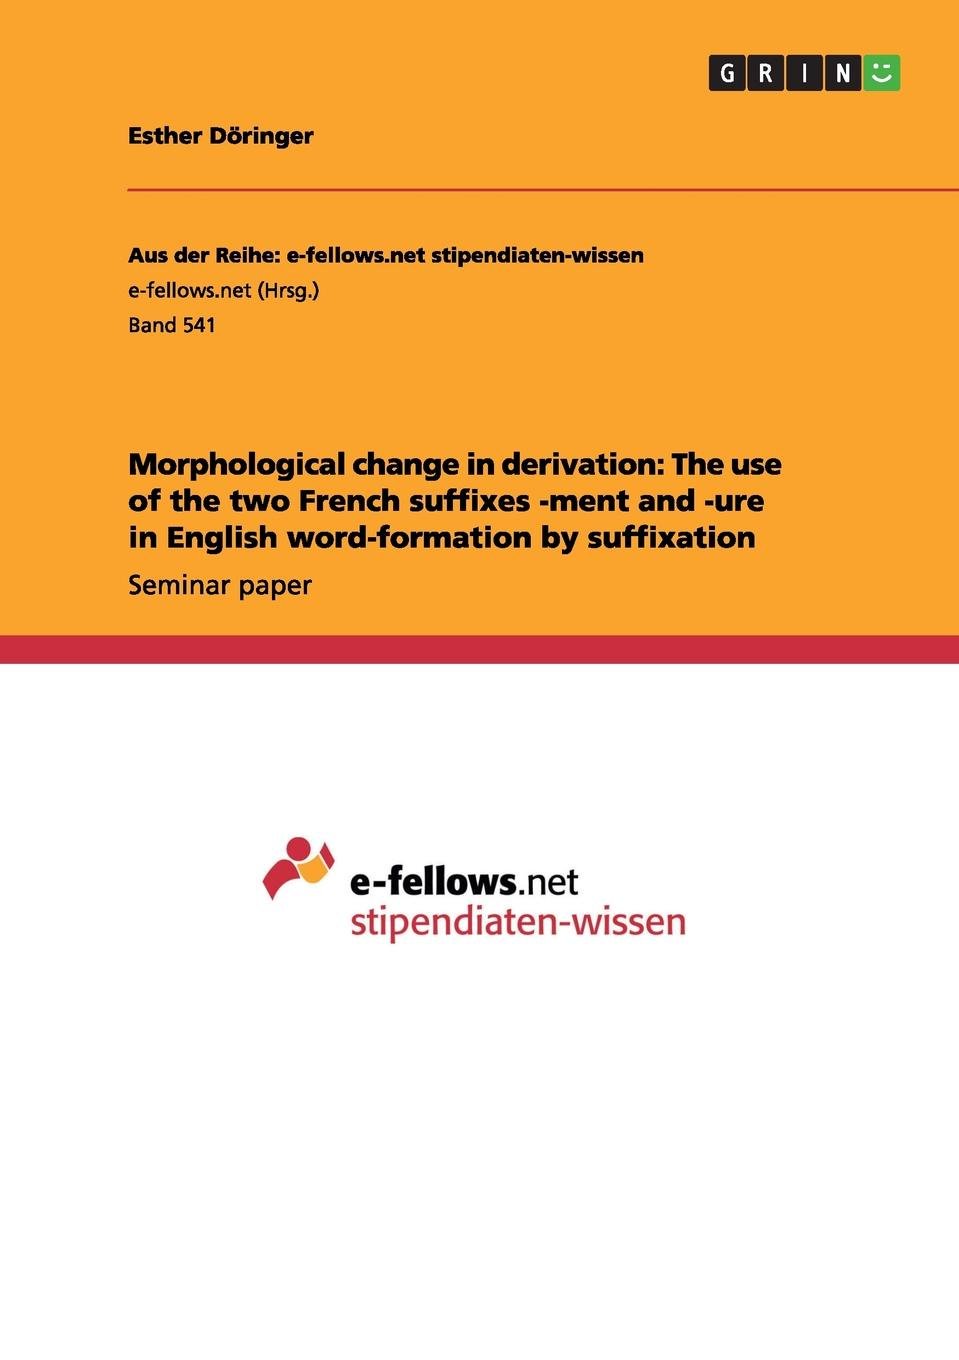 Esther Döringer Morphological change in derivation. The use of the two French suffixes -ment and -ure in English word-formation by suffixation